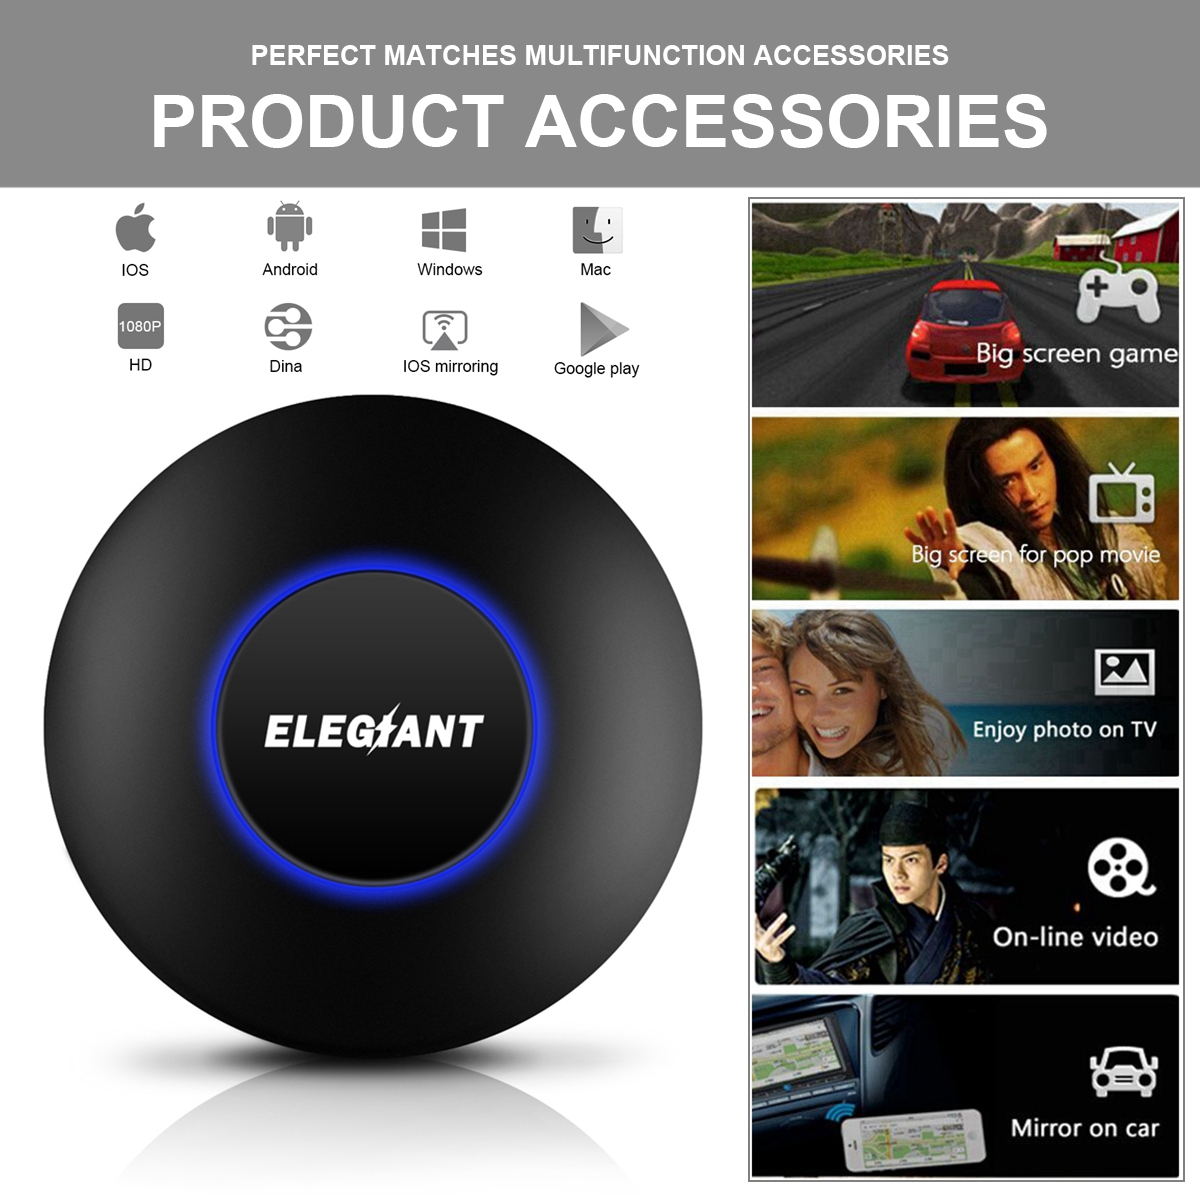 Wireless WiFi Display Dongle, ELEGIANT 1080P Mini Display Receiver HD AV Dual Output Miracast DLNA Air play Converter wifidisplay Adapter for IOS /Android / Windows /